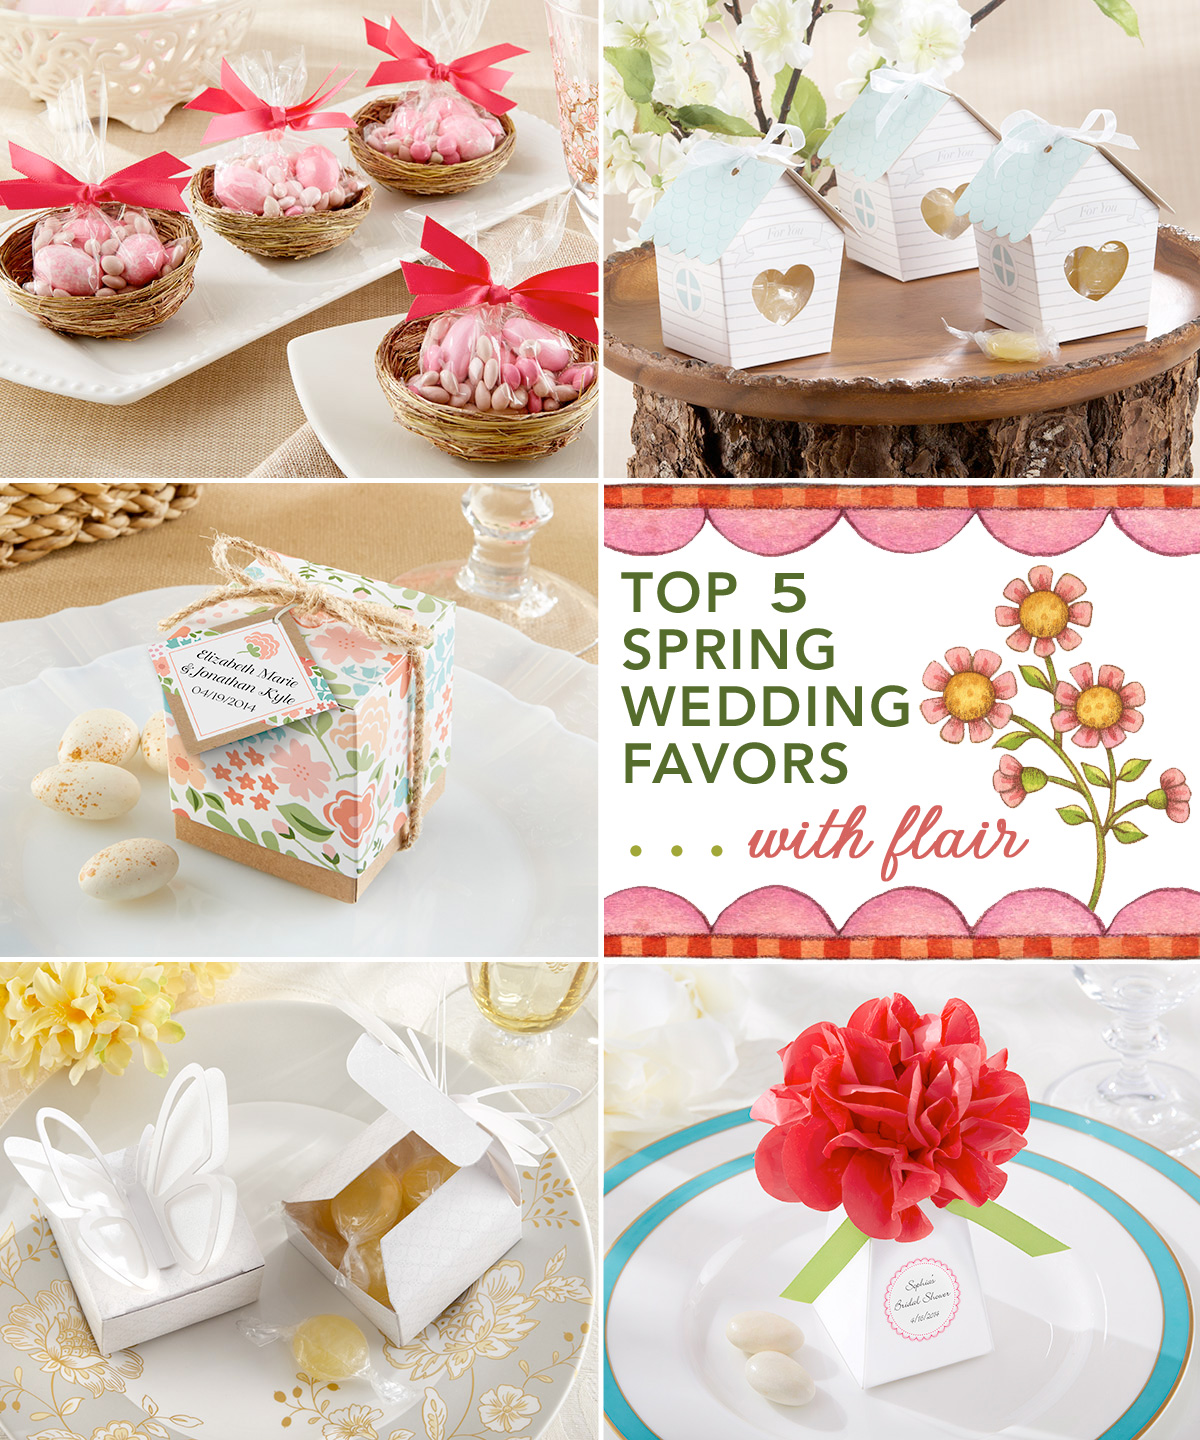 Top 5 Spring Wedding Favors . . . with flair from Kensington Classics / as seen on www.BrendasWeddingBlog.com